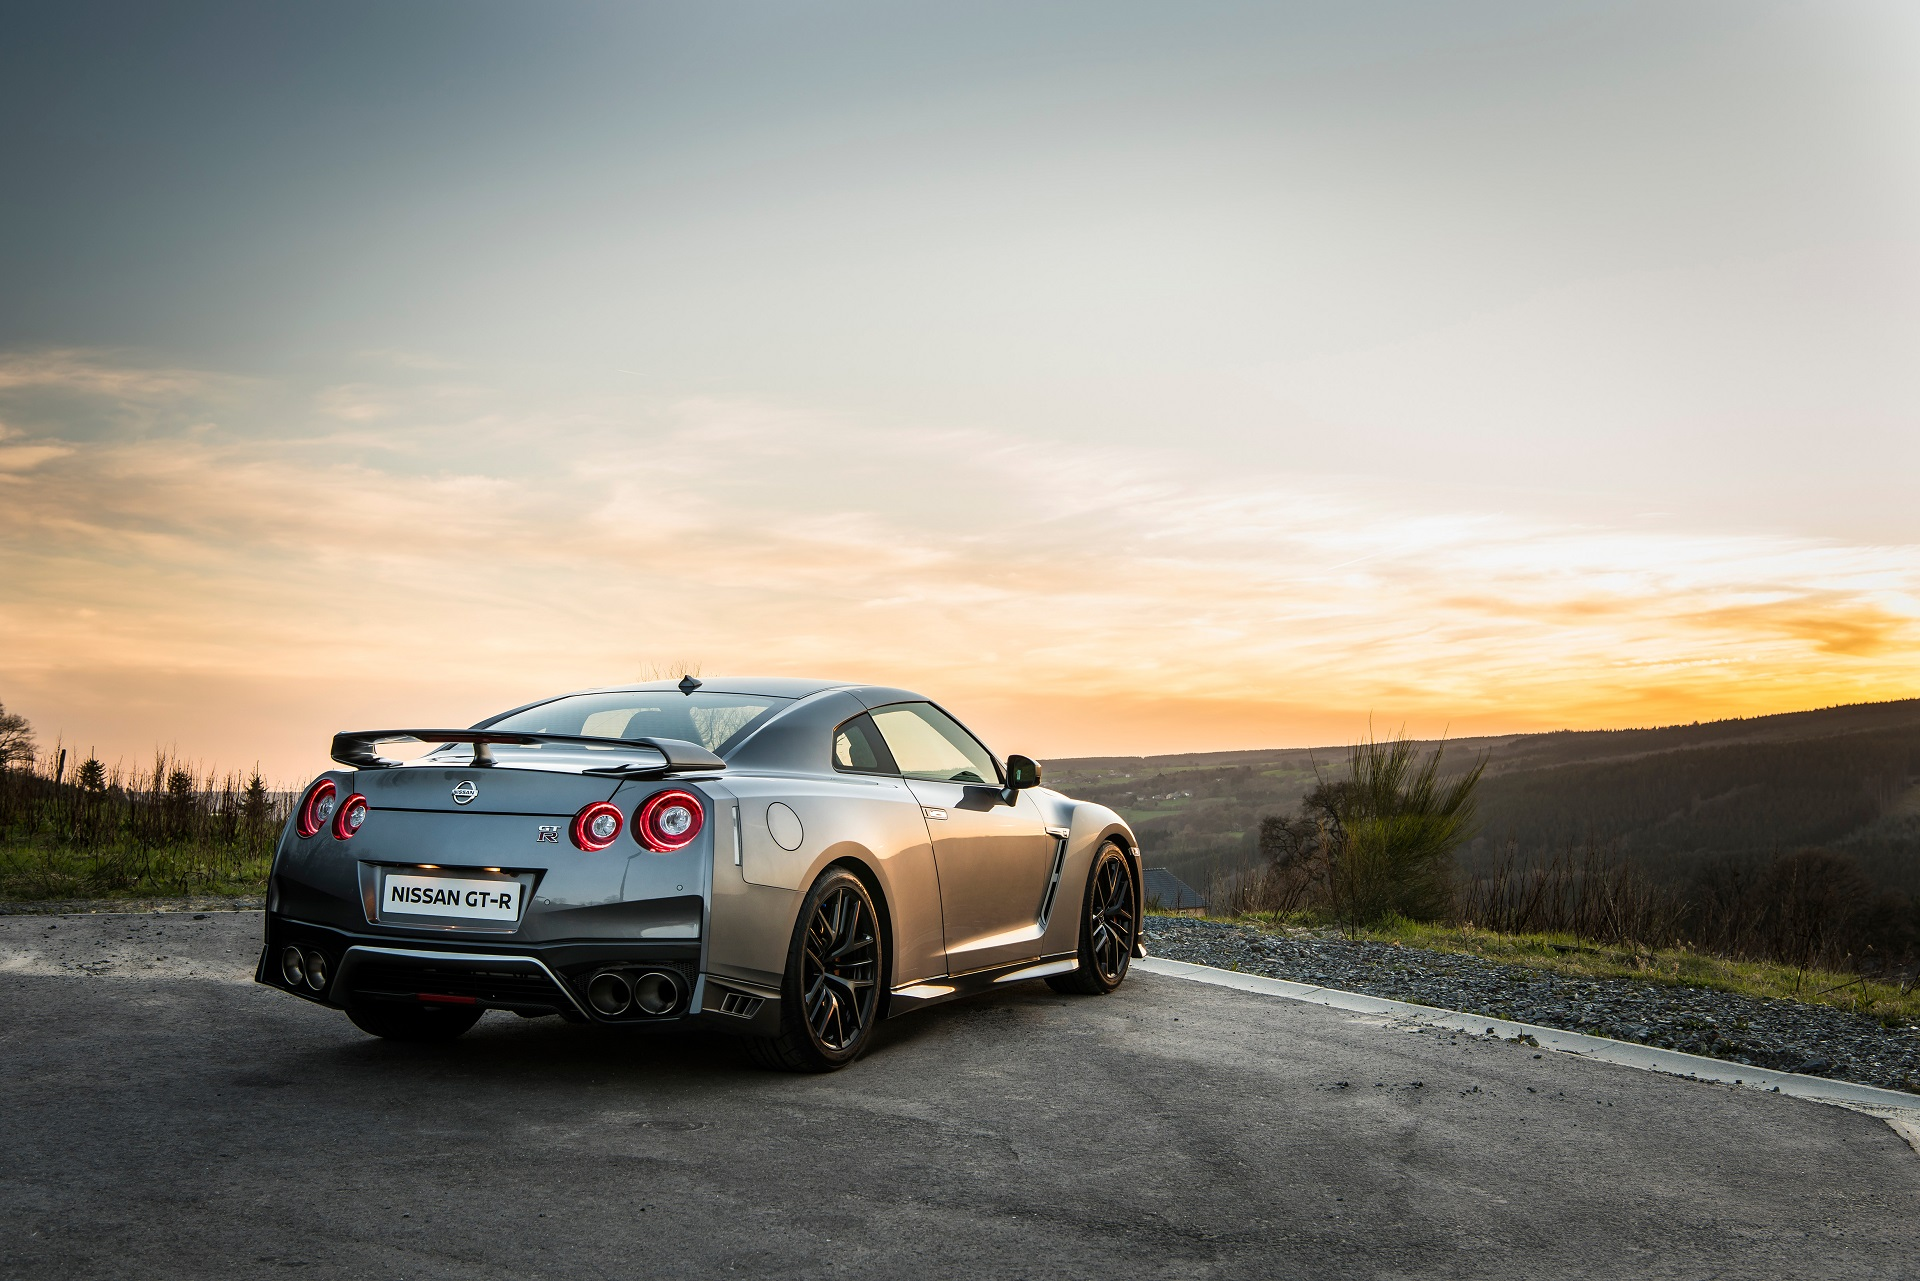 Nissan Of Mobile >> 2017 Nissan GT-R detailed in new video and photos - ForceGT.com